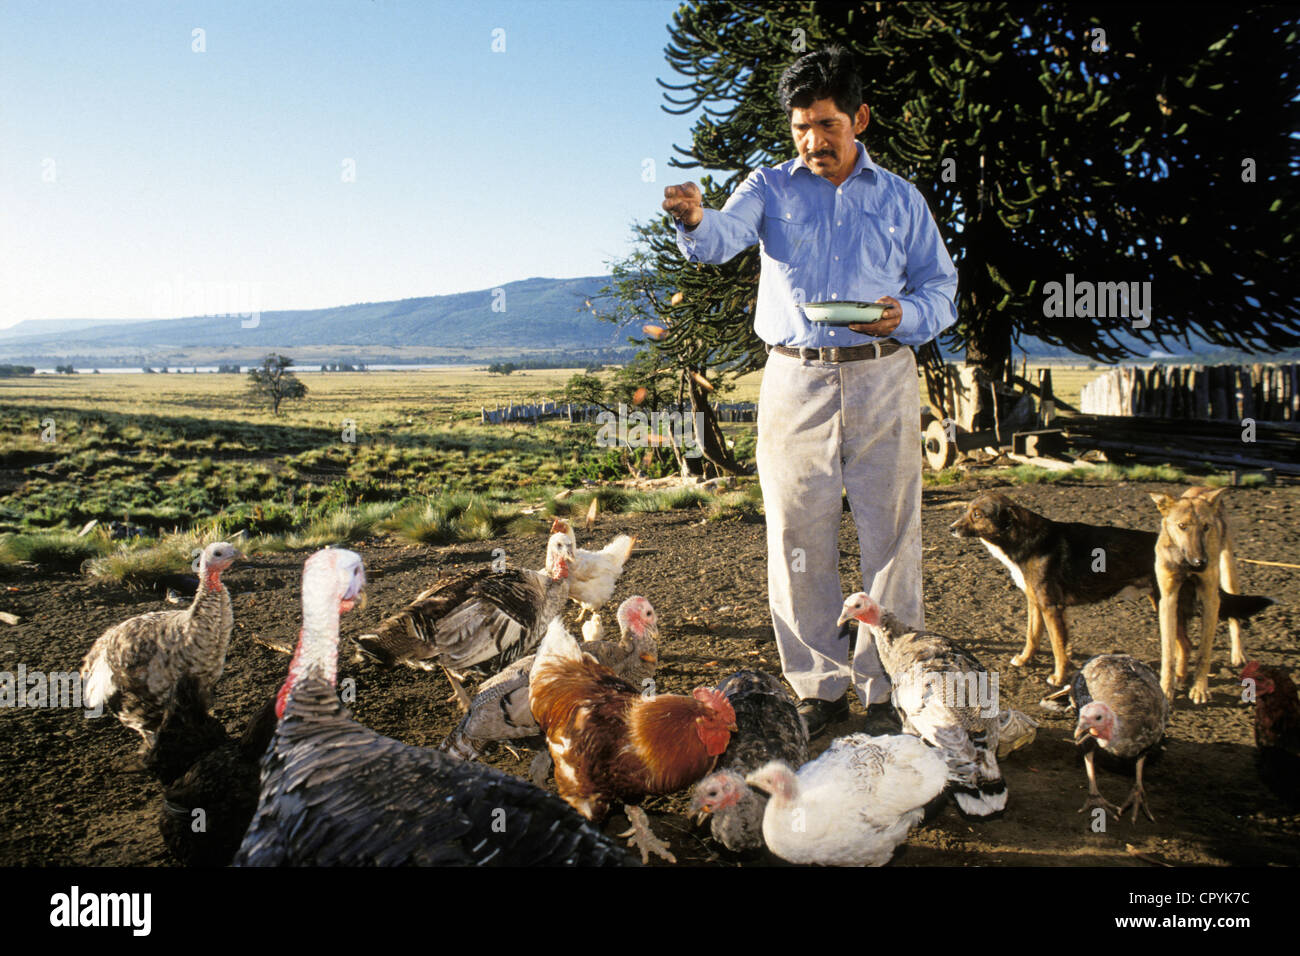 Chile Araucania Region Quinquen valley in the Mapuche indians community the nut is also used to feed the chickens - Stock Image